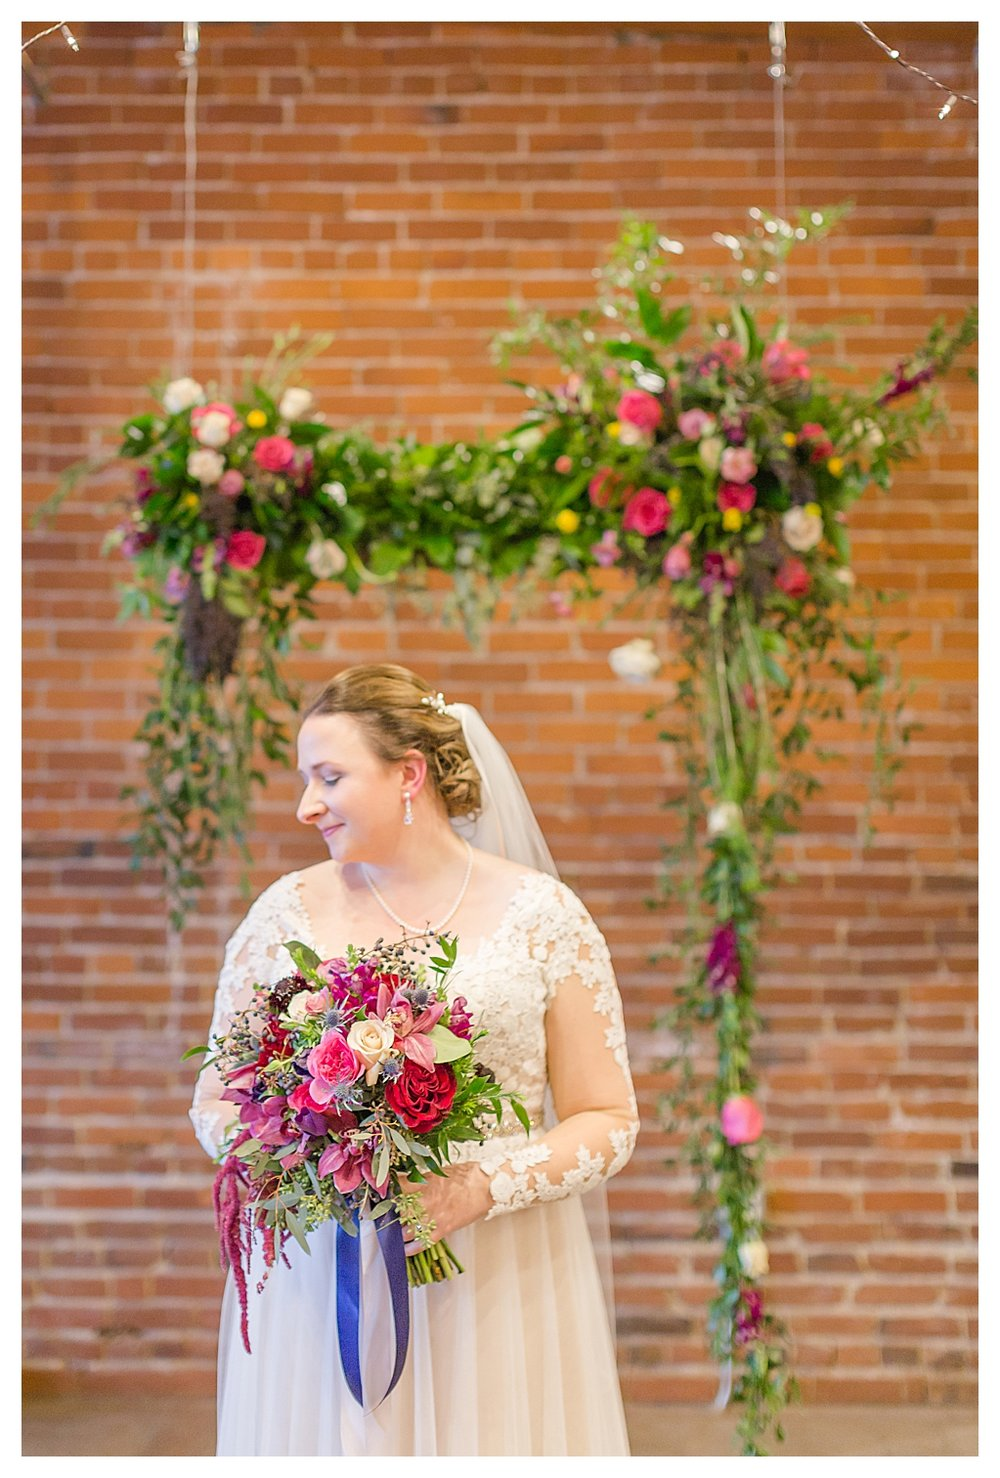 Winter Wedding at The Mill Top Indy Noblesville_1238.jpg